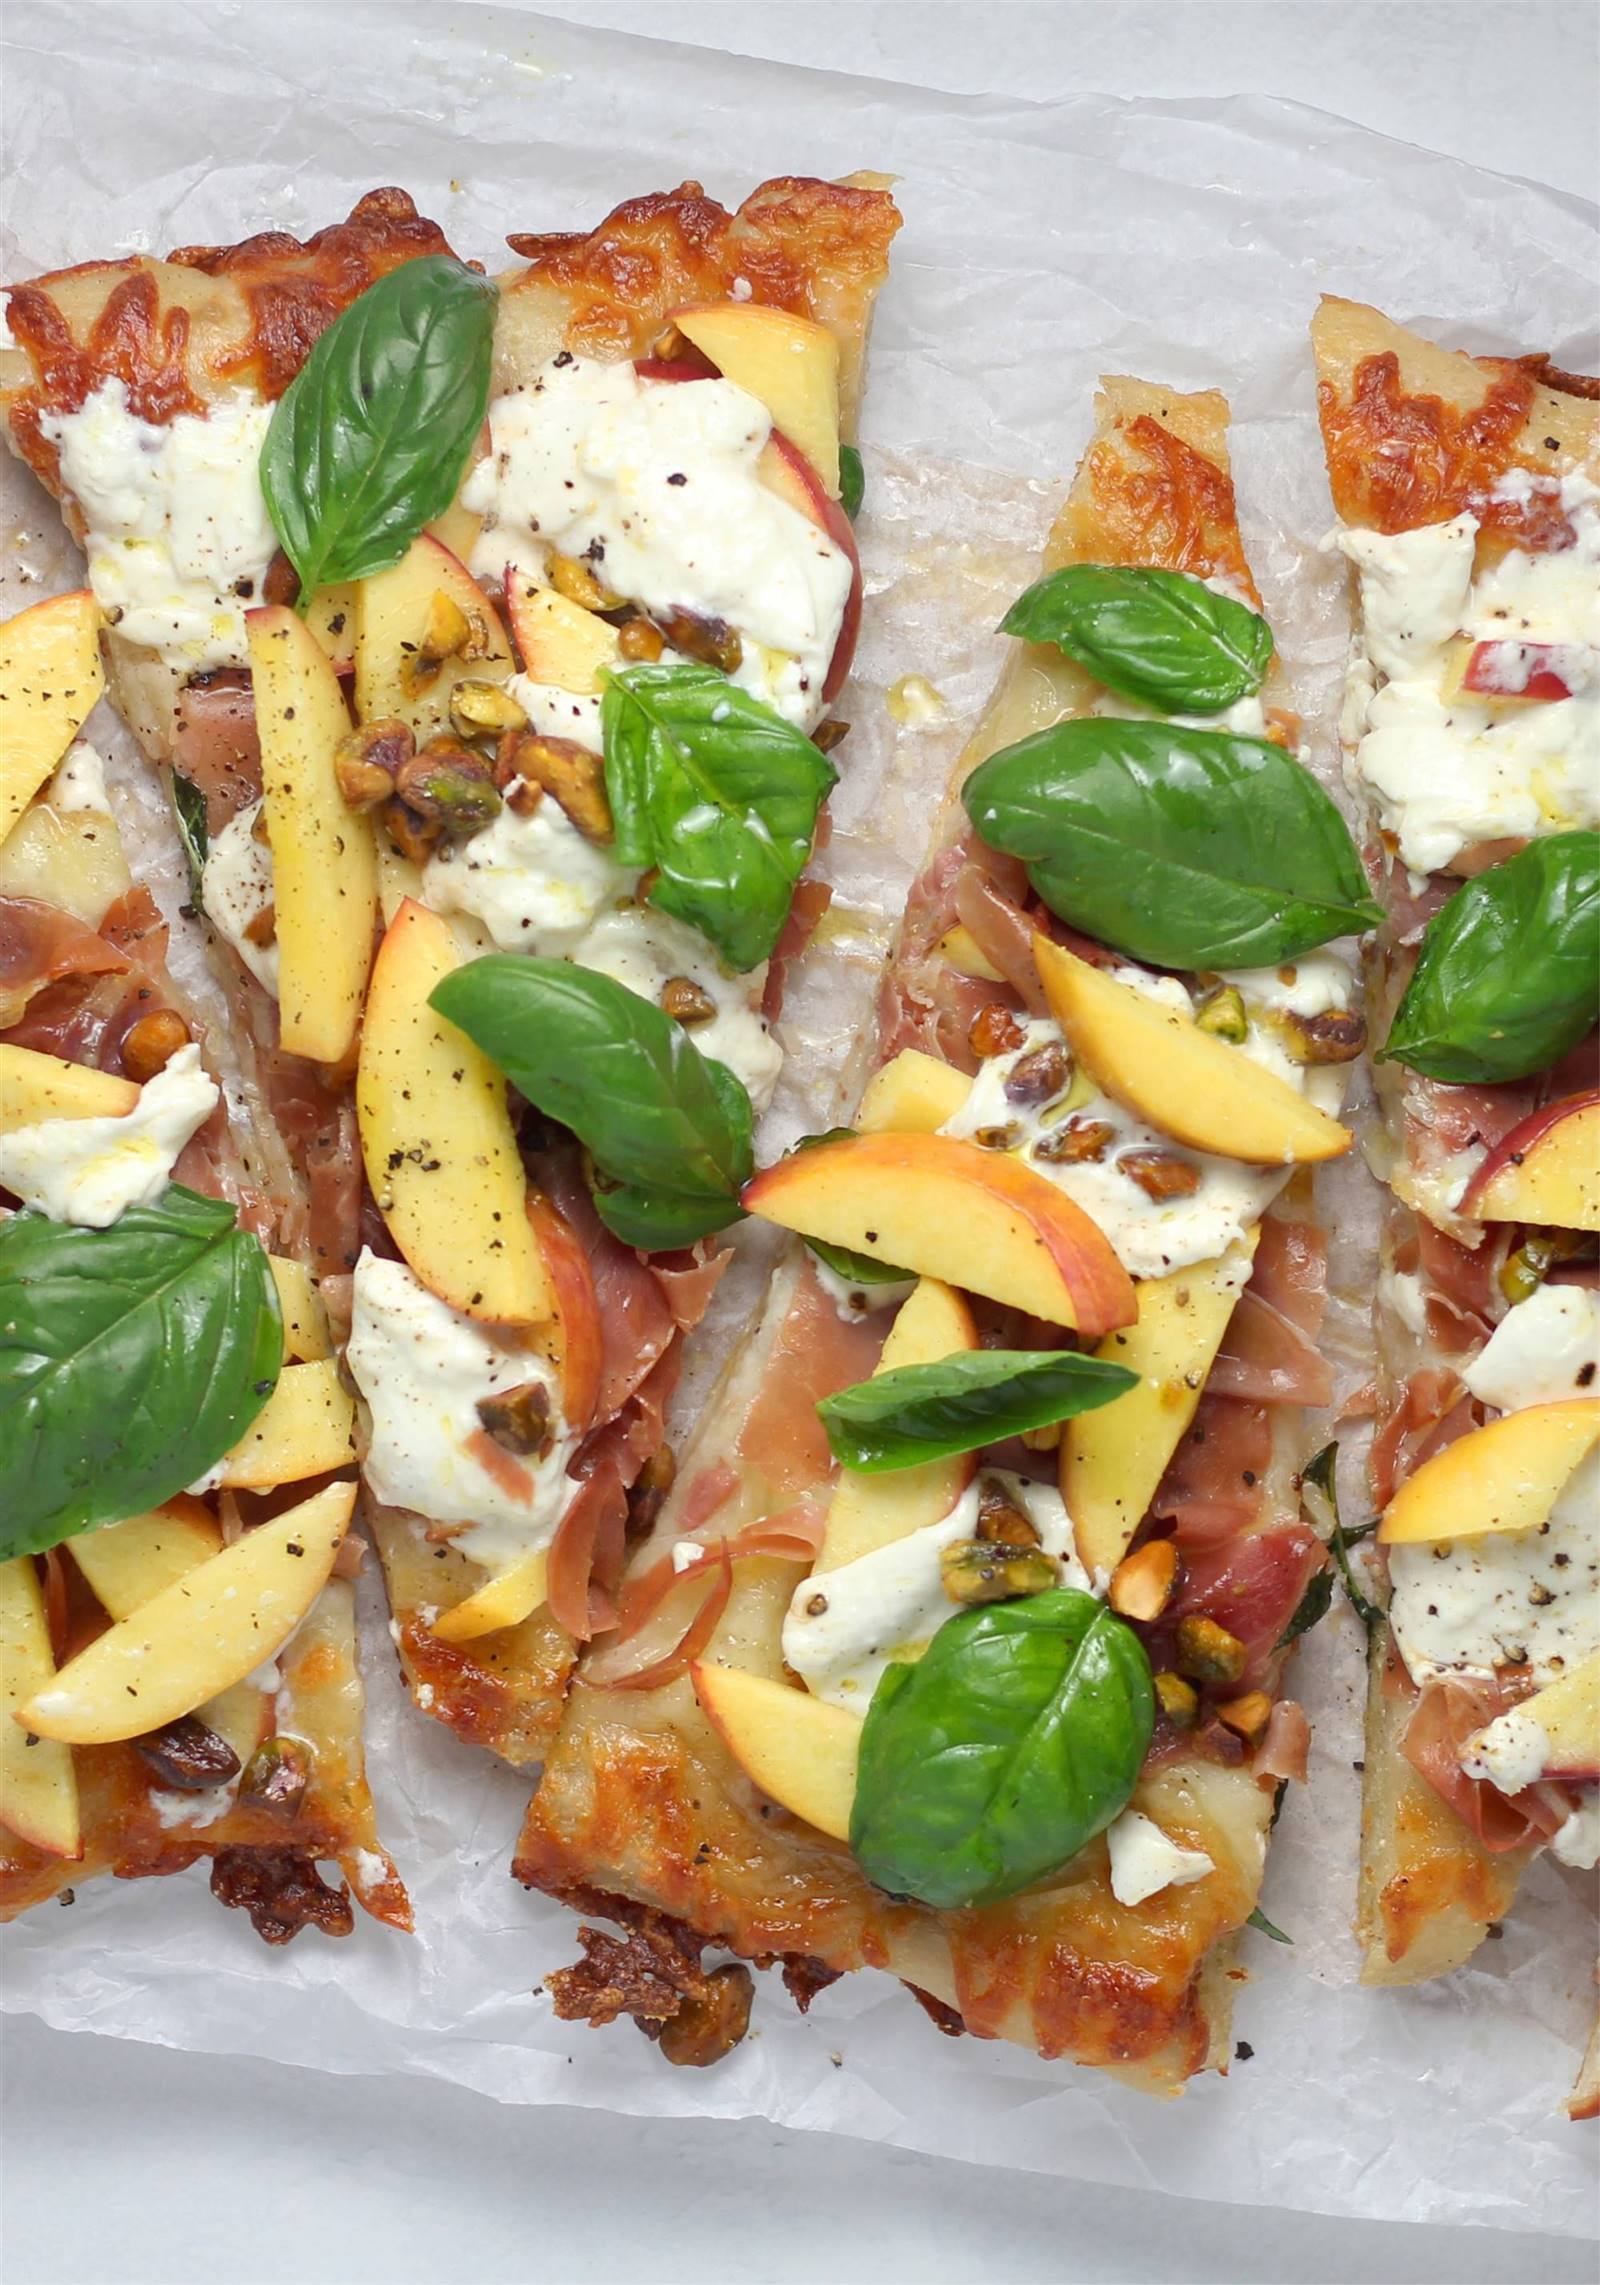 pizza saludable toppings ligeros con fruta